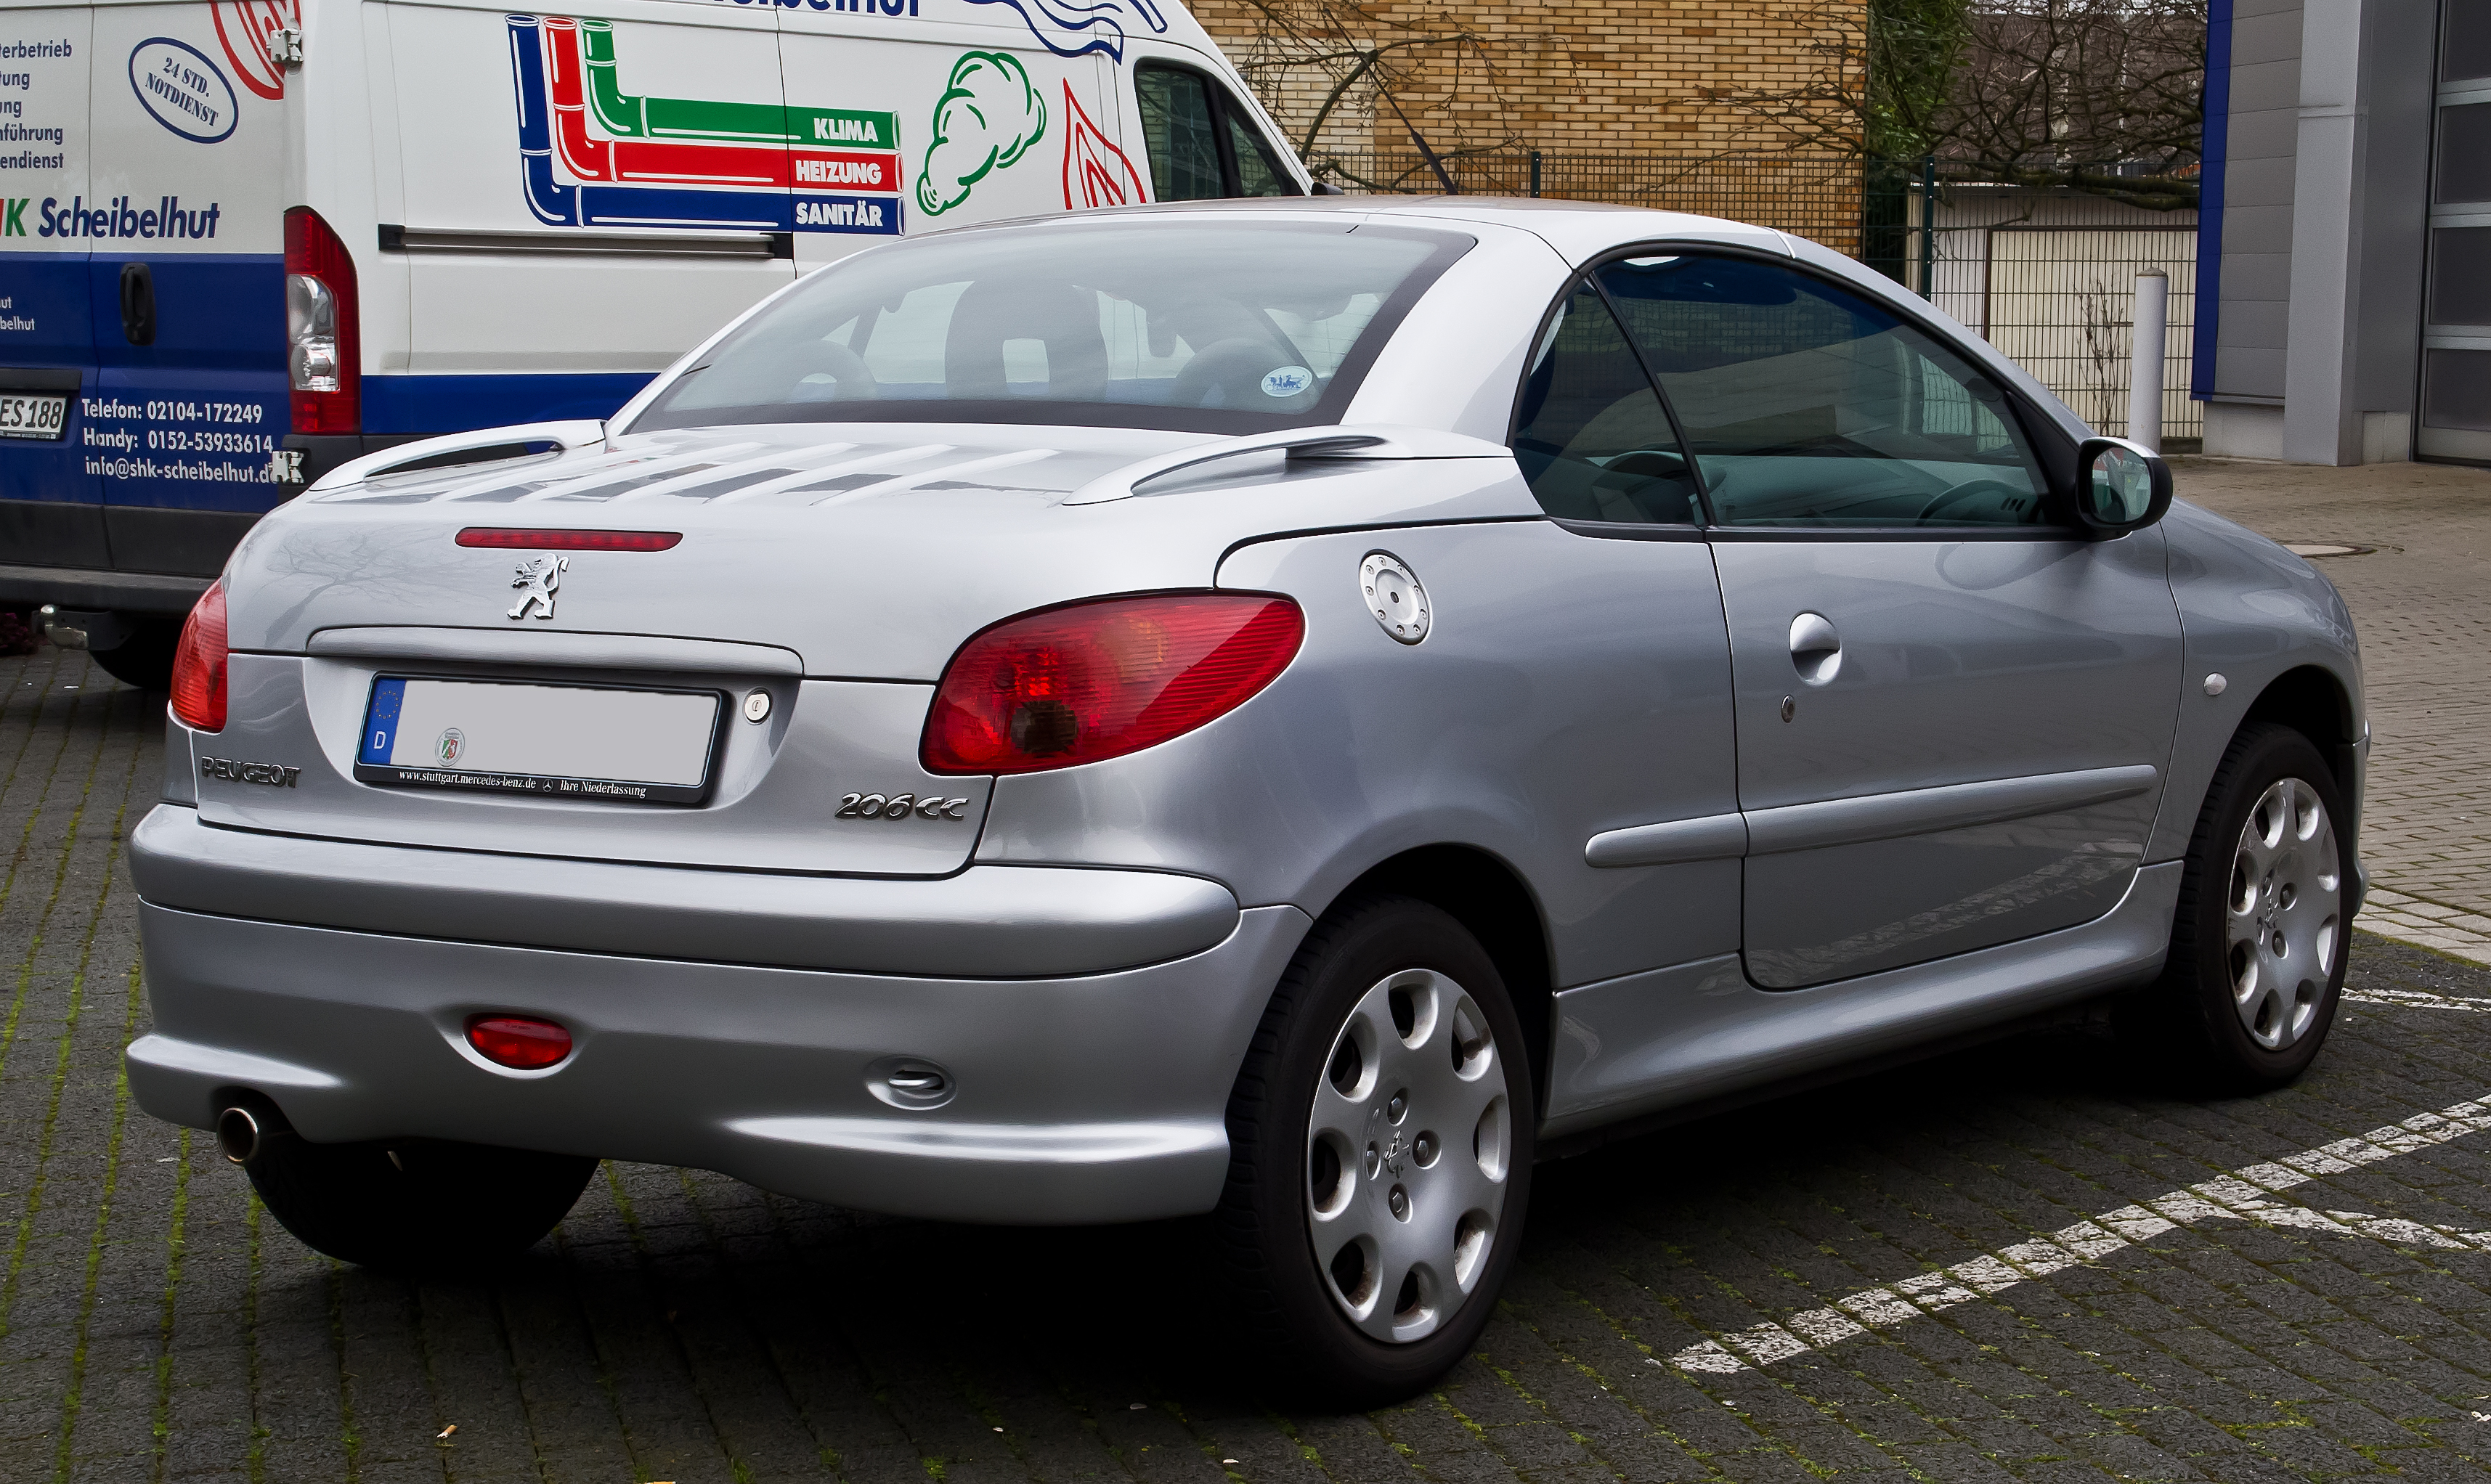 2004 peugeot 206 cc pictures information and specs auto. Black Bedroom Furniture Sets. Home Design Ideas